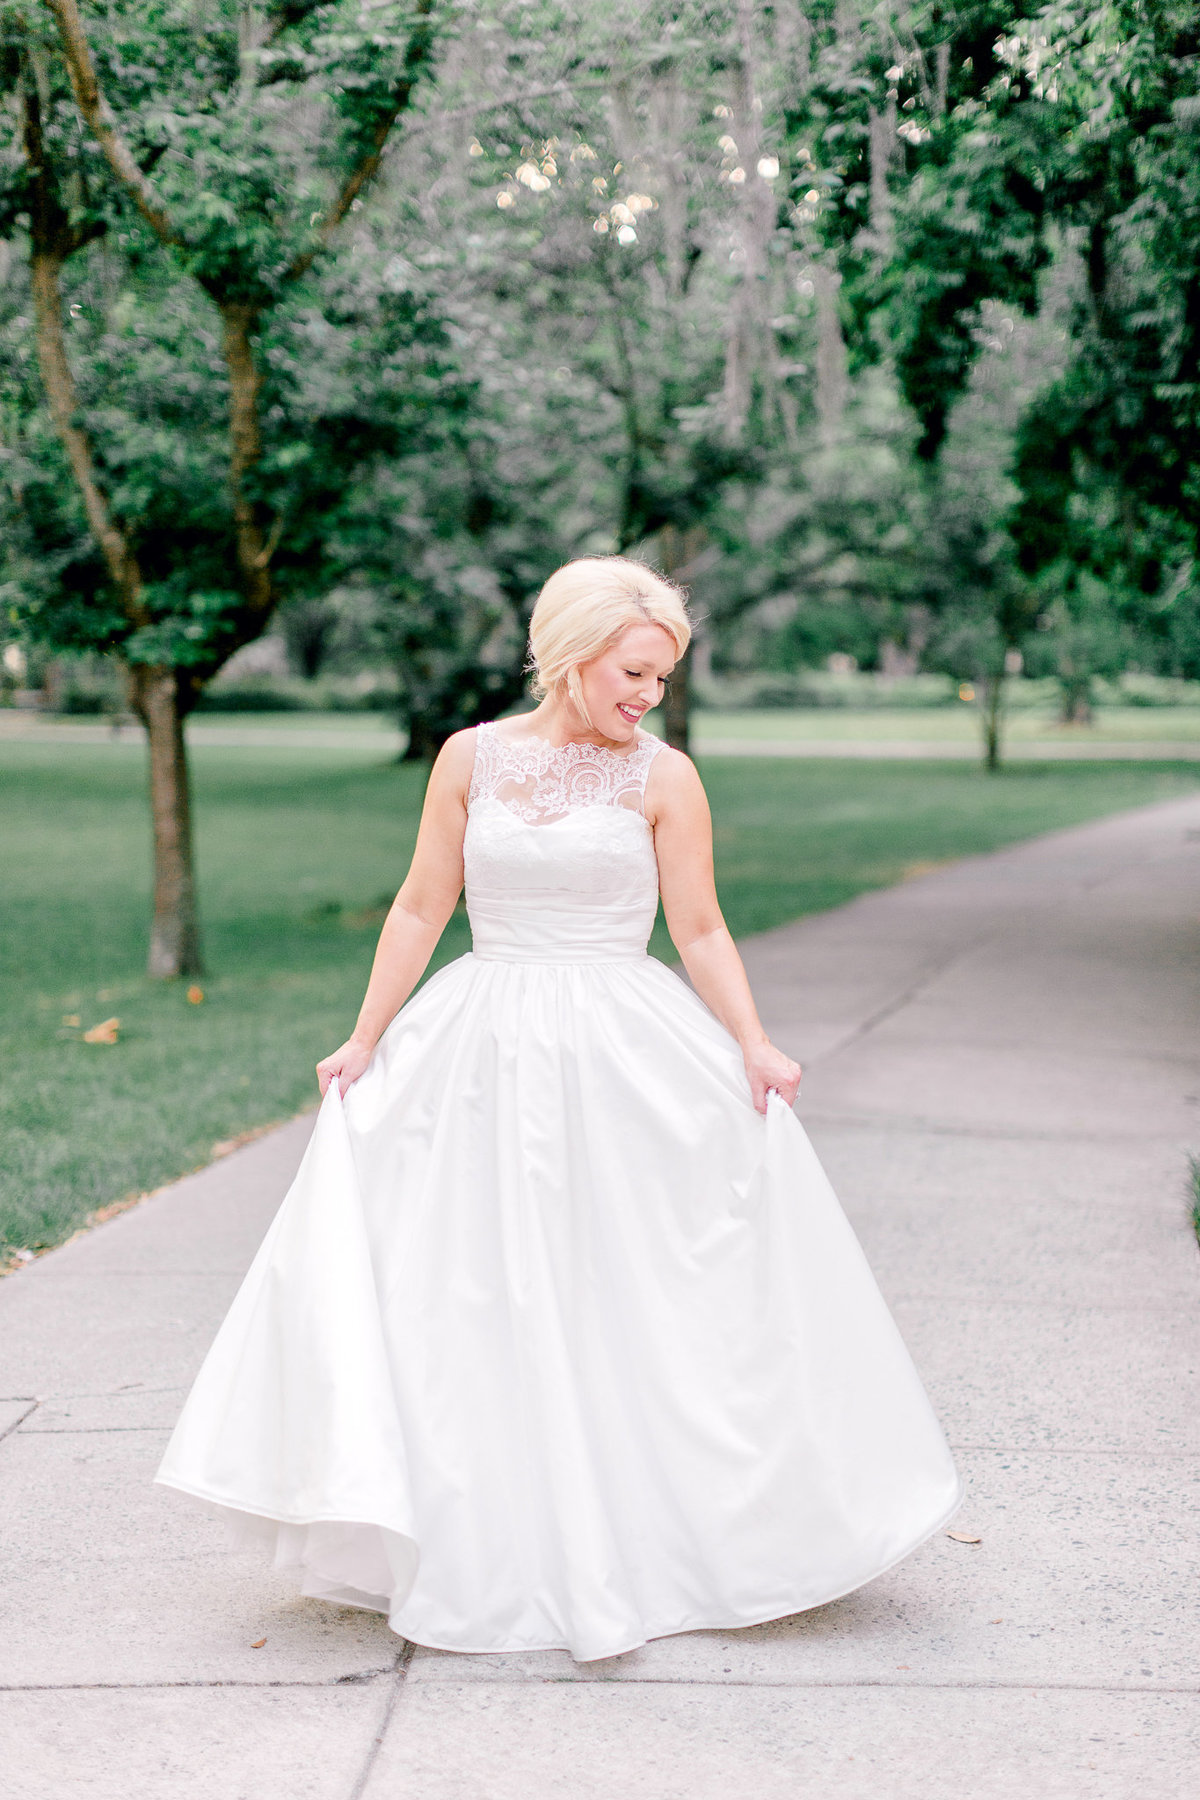 Savannah-Georgia-Wedding-Photographer-Holly-Felts-Photography-Wilmon-Wedding-463